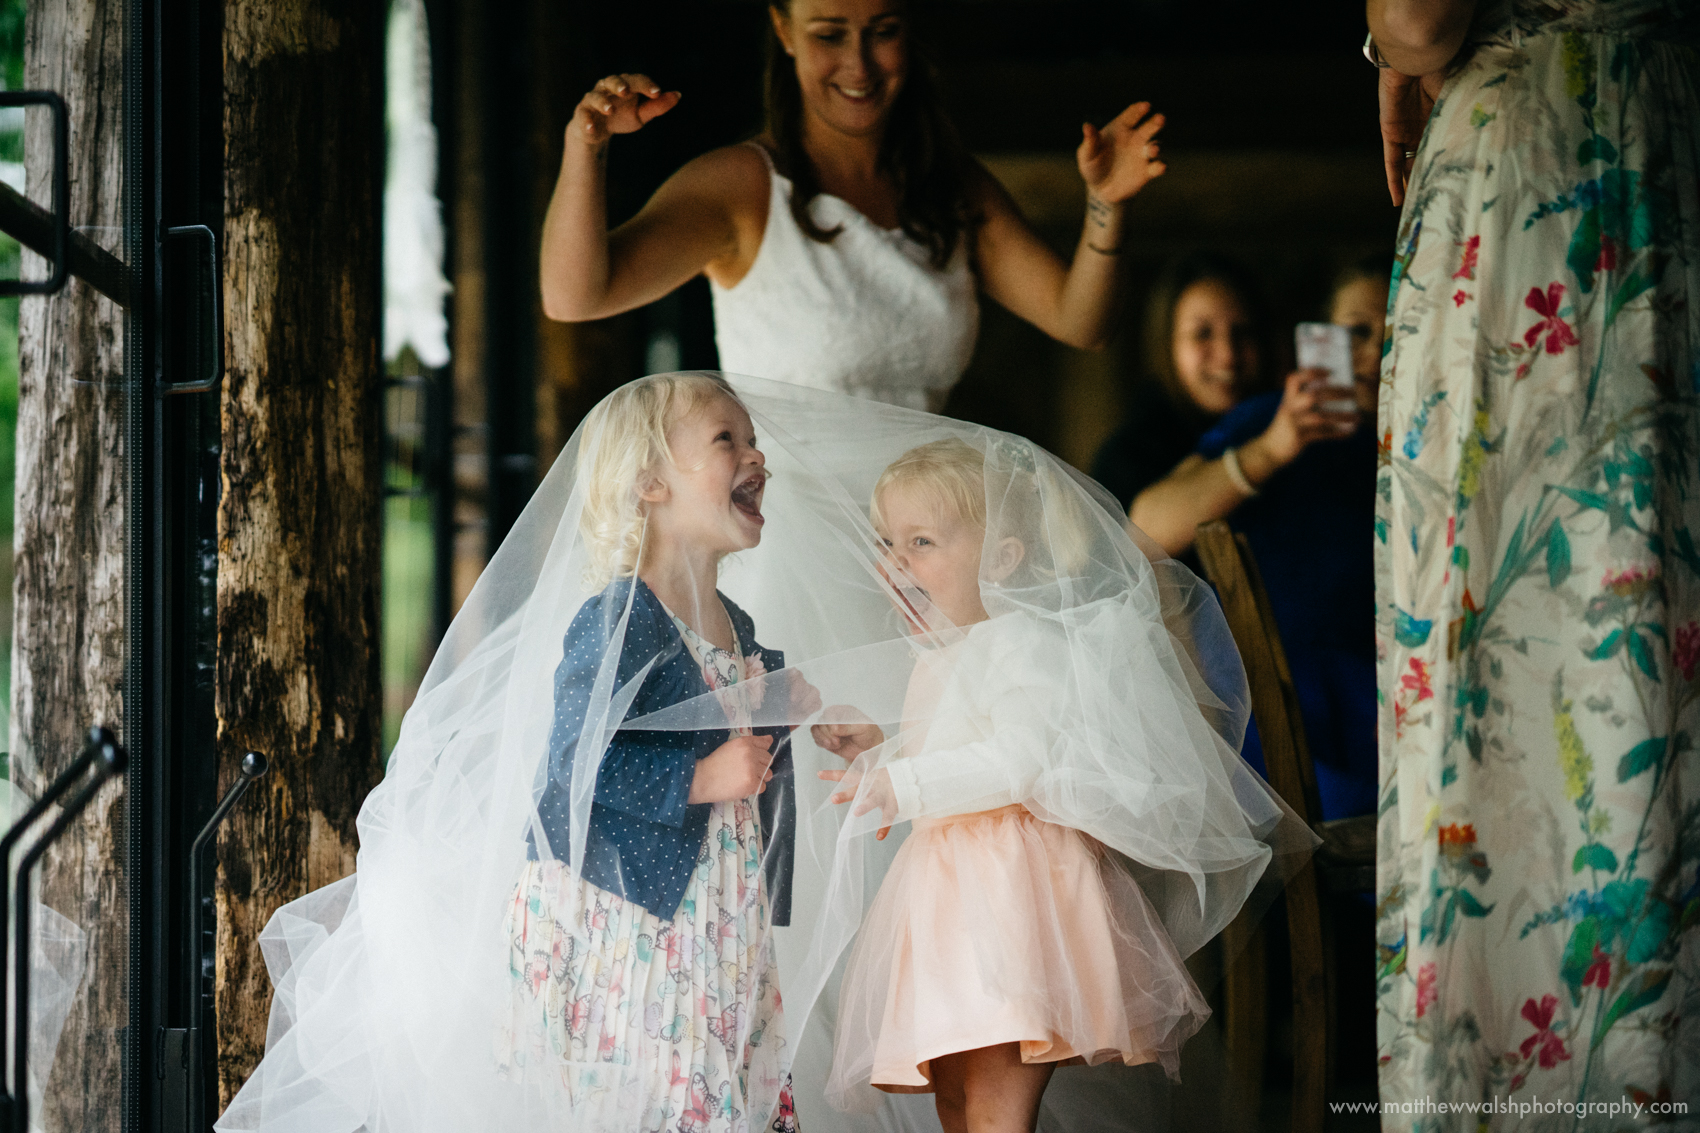 Kids having lots of fun under the wedding dress